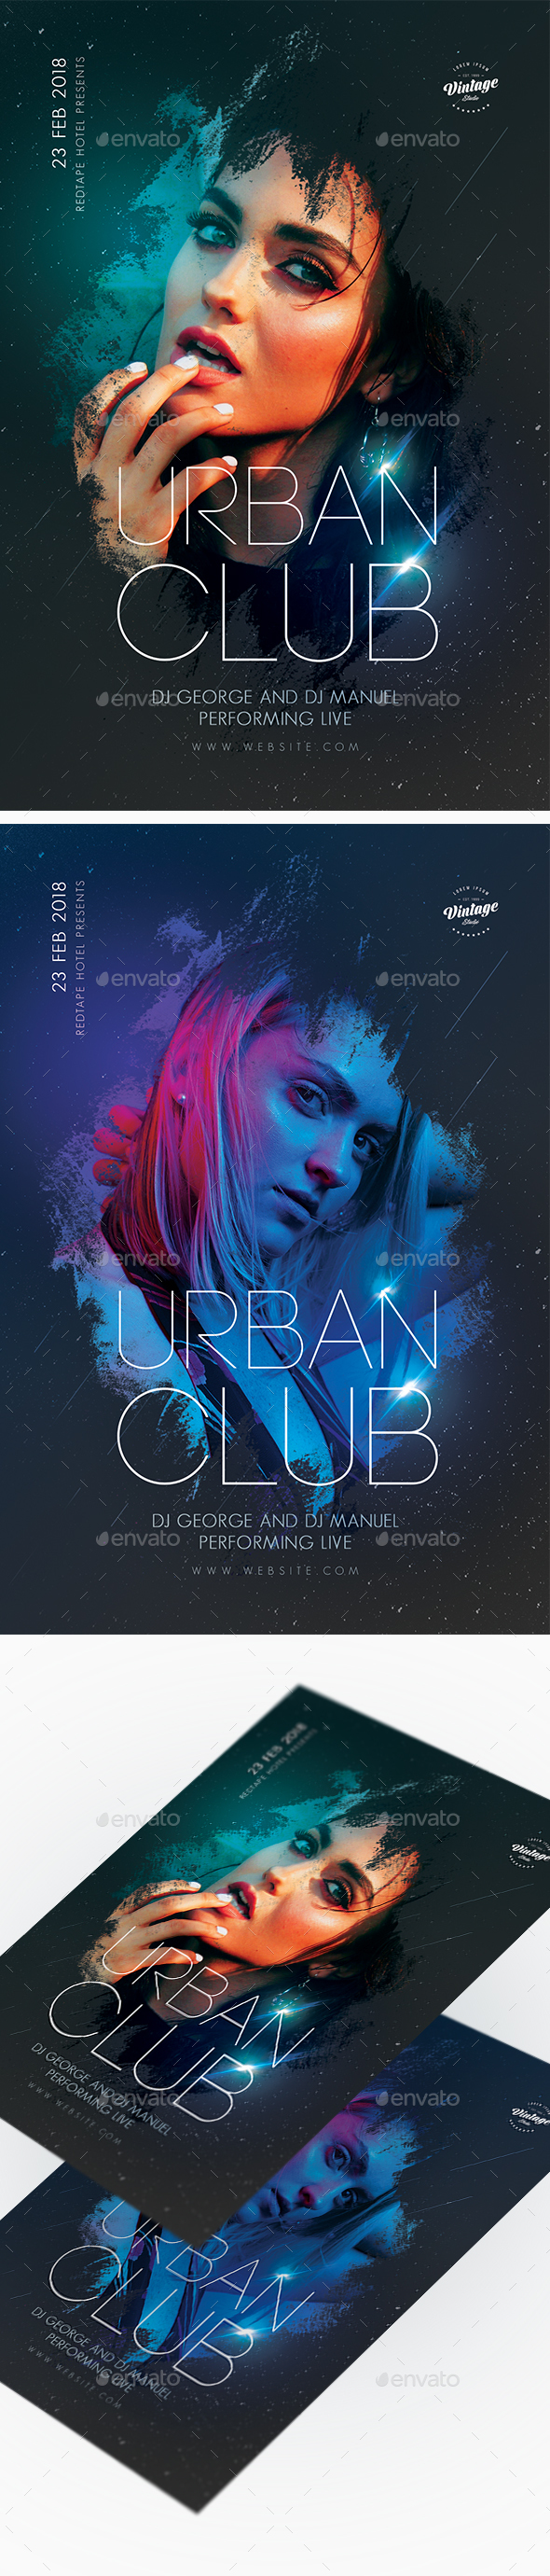 Urban Club Party Flyer - Clubs & Parties Events